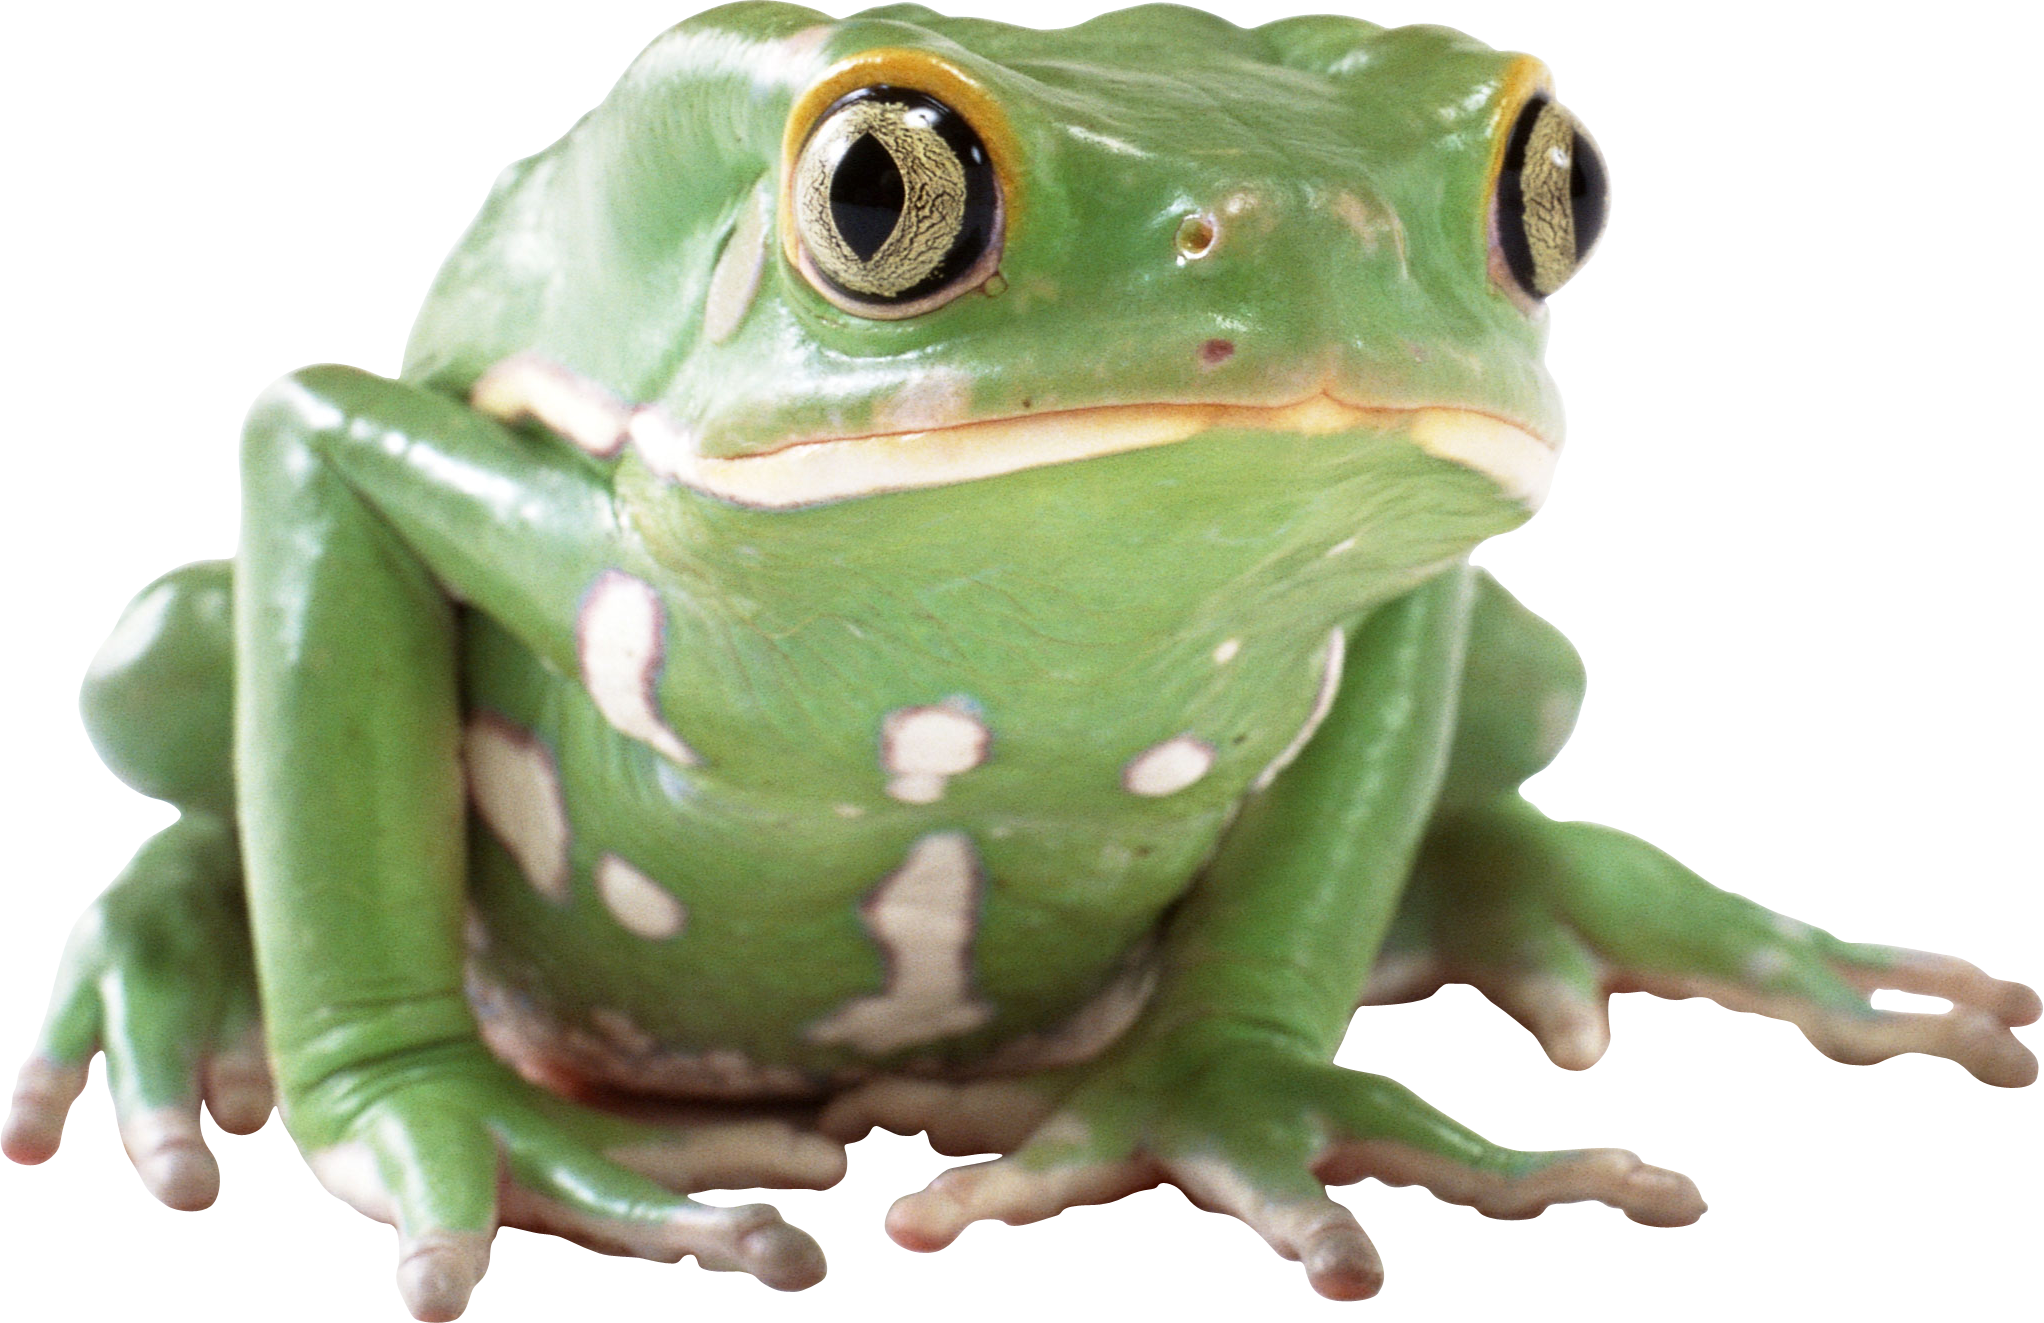 Frogs Png - frog PNG image